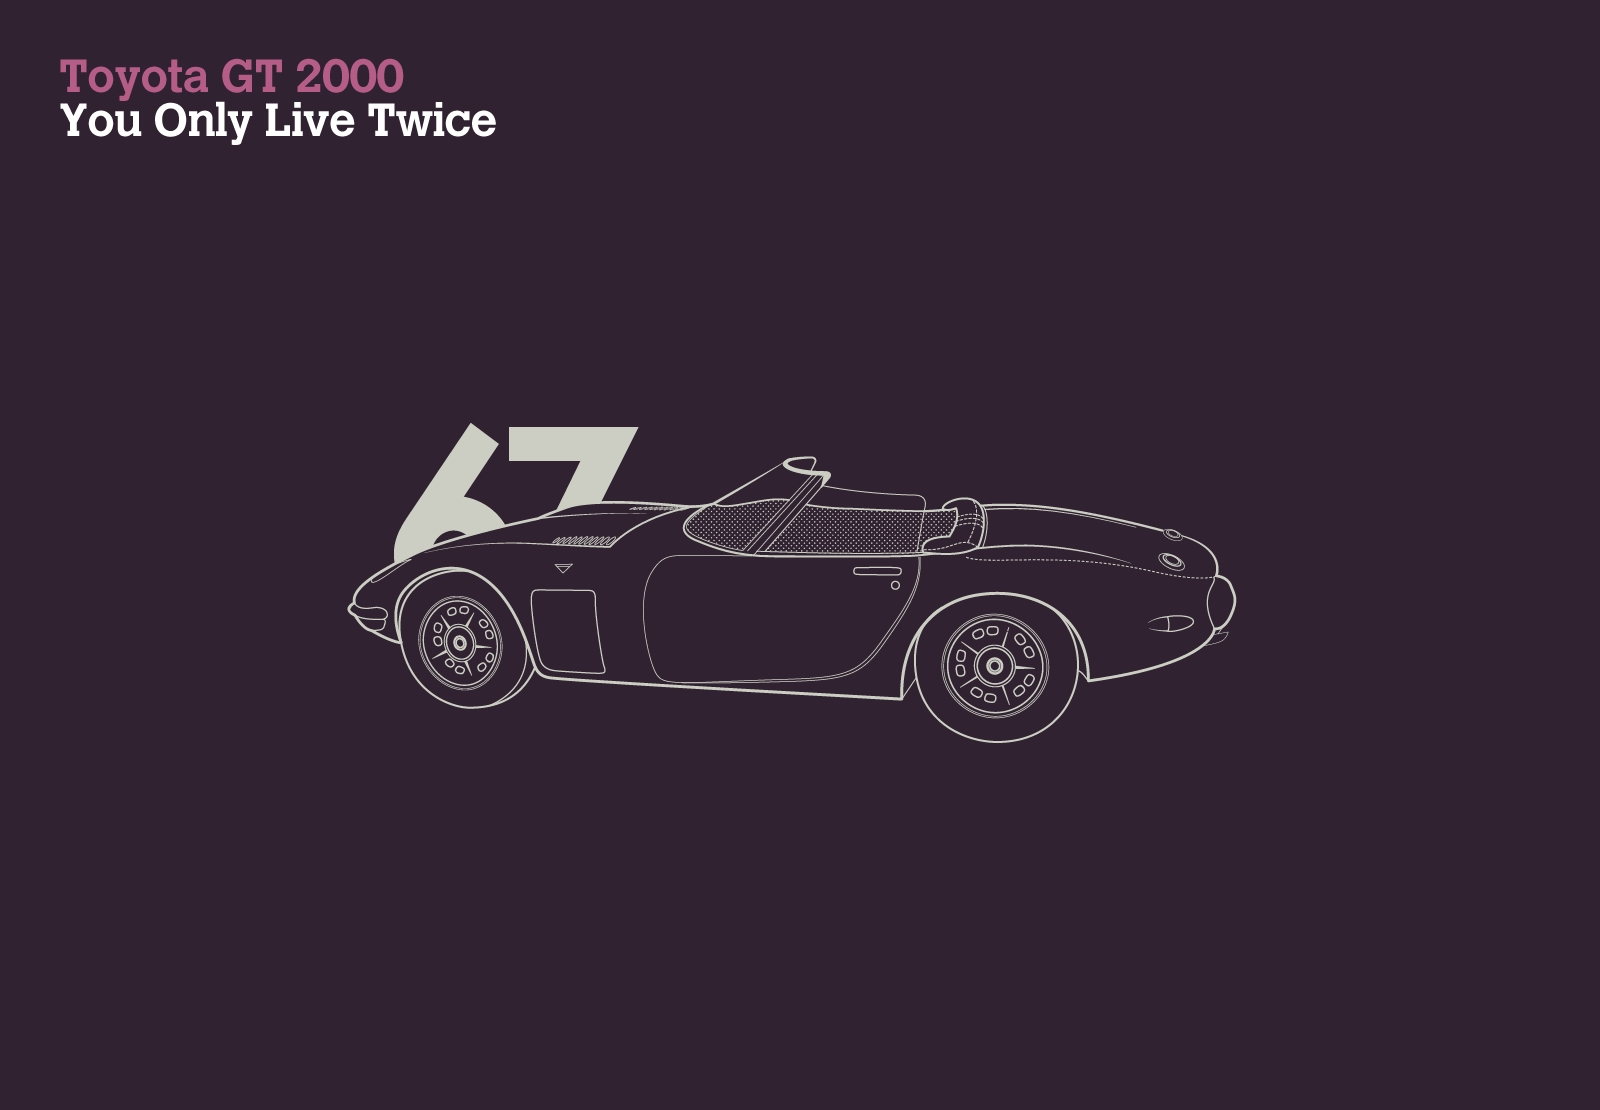 Toyota GT 2000 You Only Live Twice